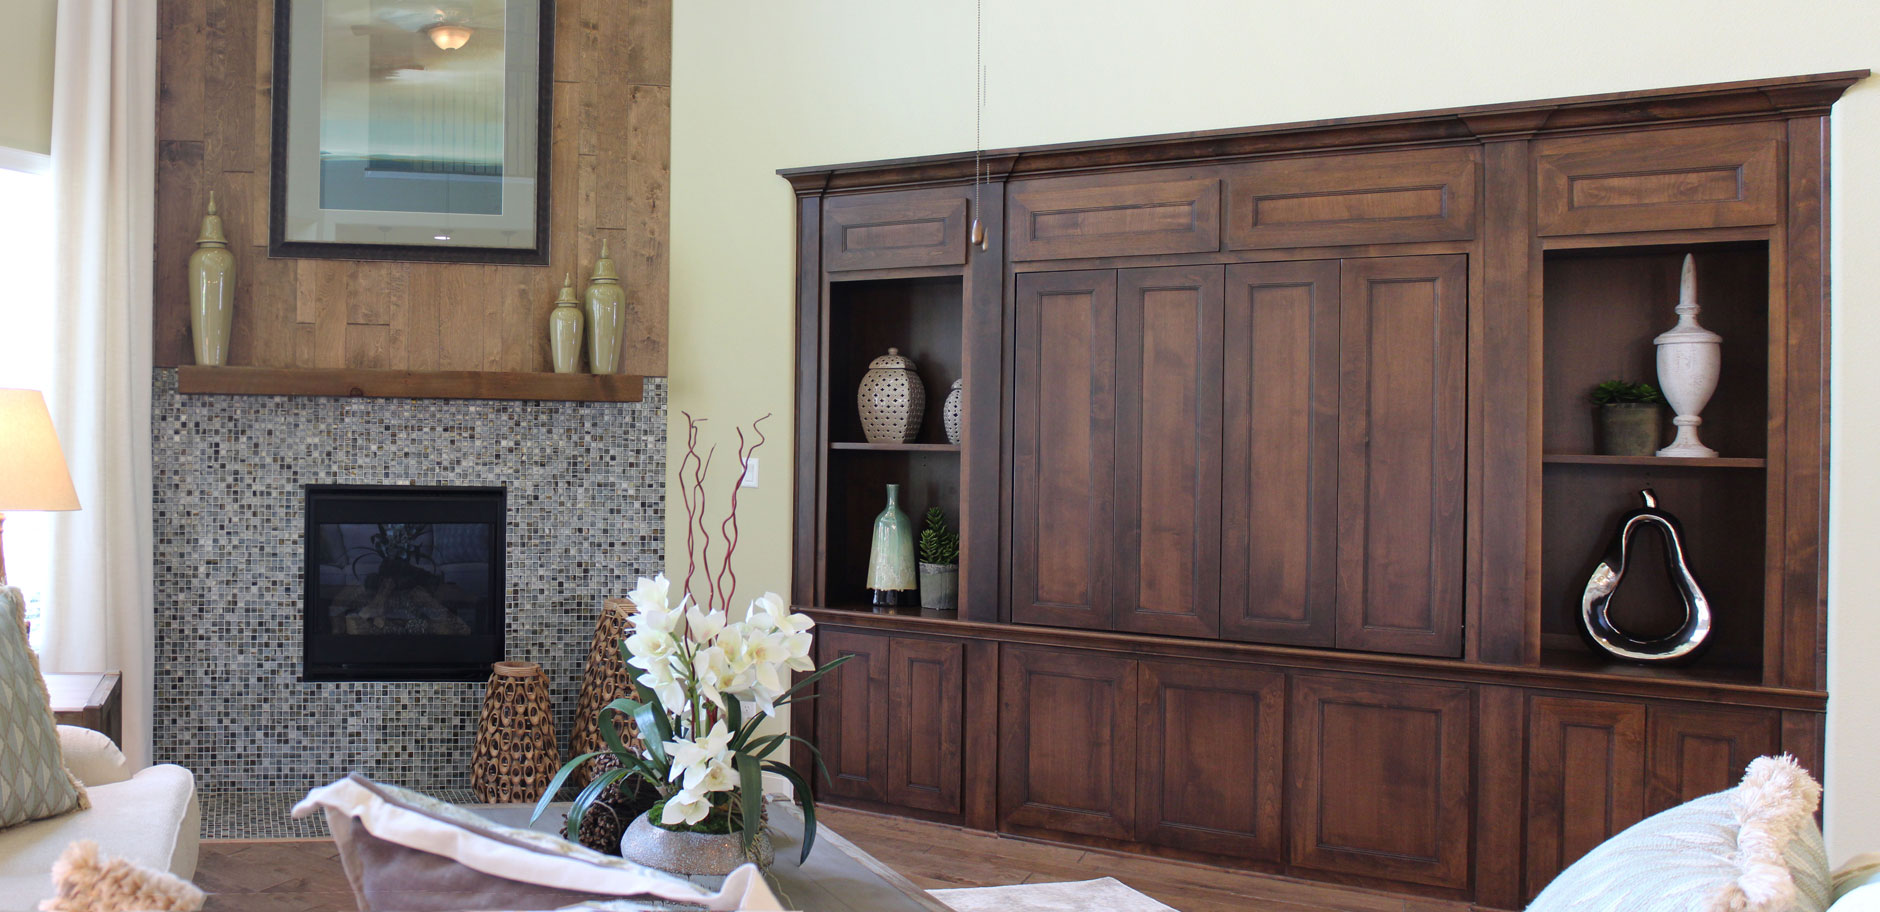 ... - Burrows Cabinets - central Texas builder-direct custom cabinets